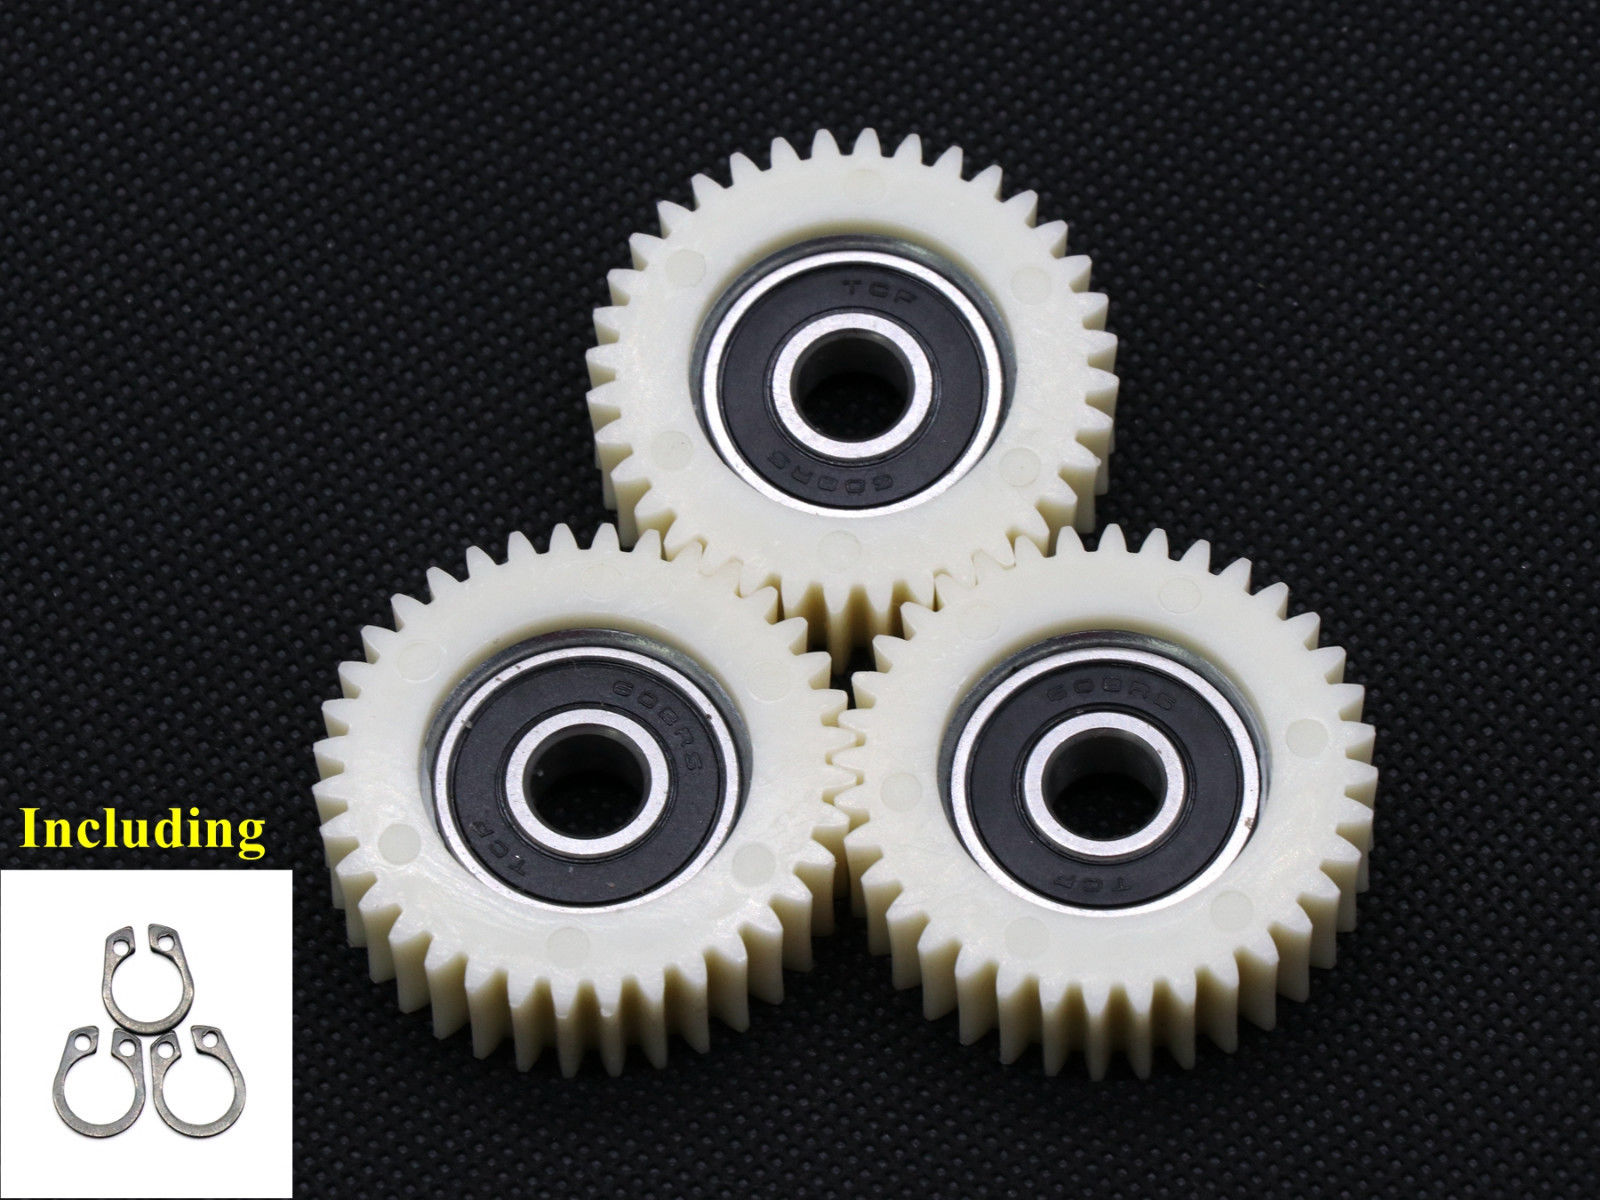 3pcs 38mm 36 Teeth Nylon 8mm Bore Hole 608 Z Ball Bearing Gears For Electrical Bike Motor Clutch Plastic Planetary Gear